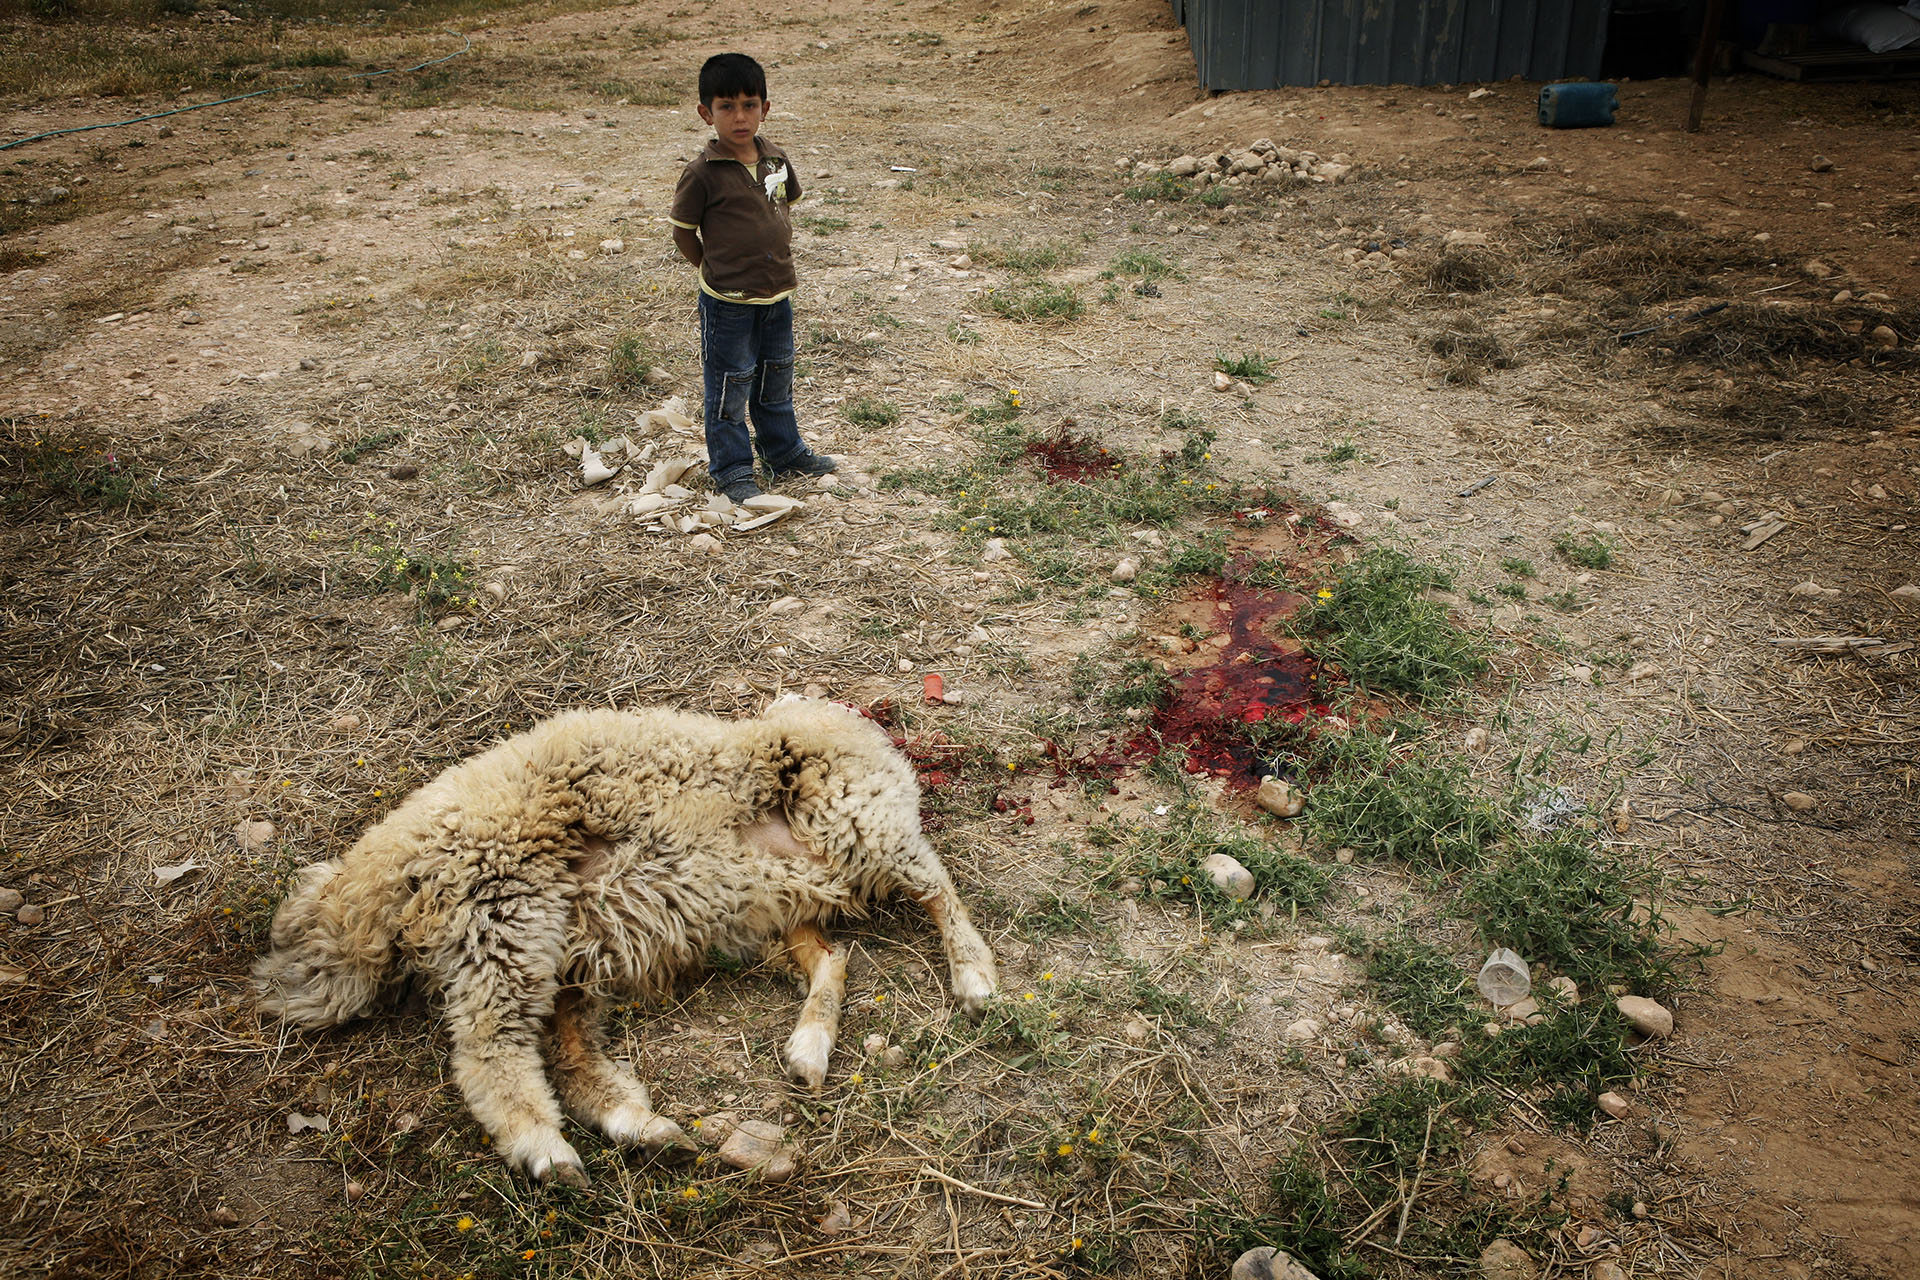 A child stands by the carcass of a freshly slaughtered ship. Al Araqib, April 2009.